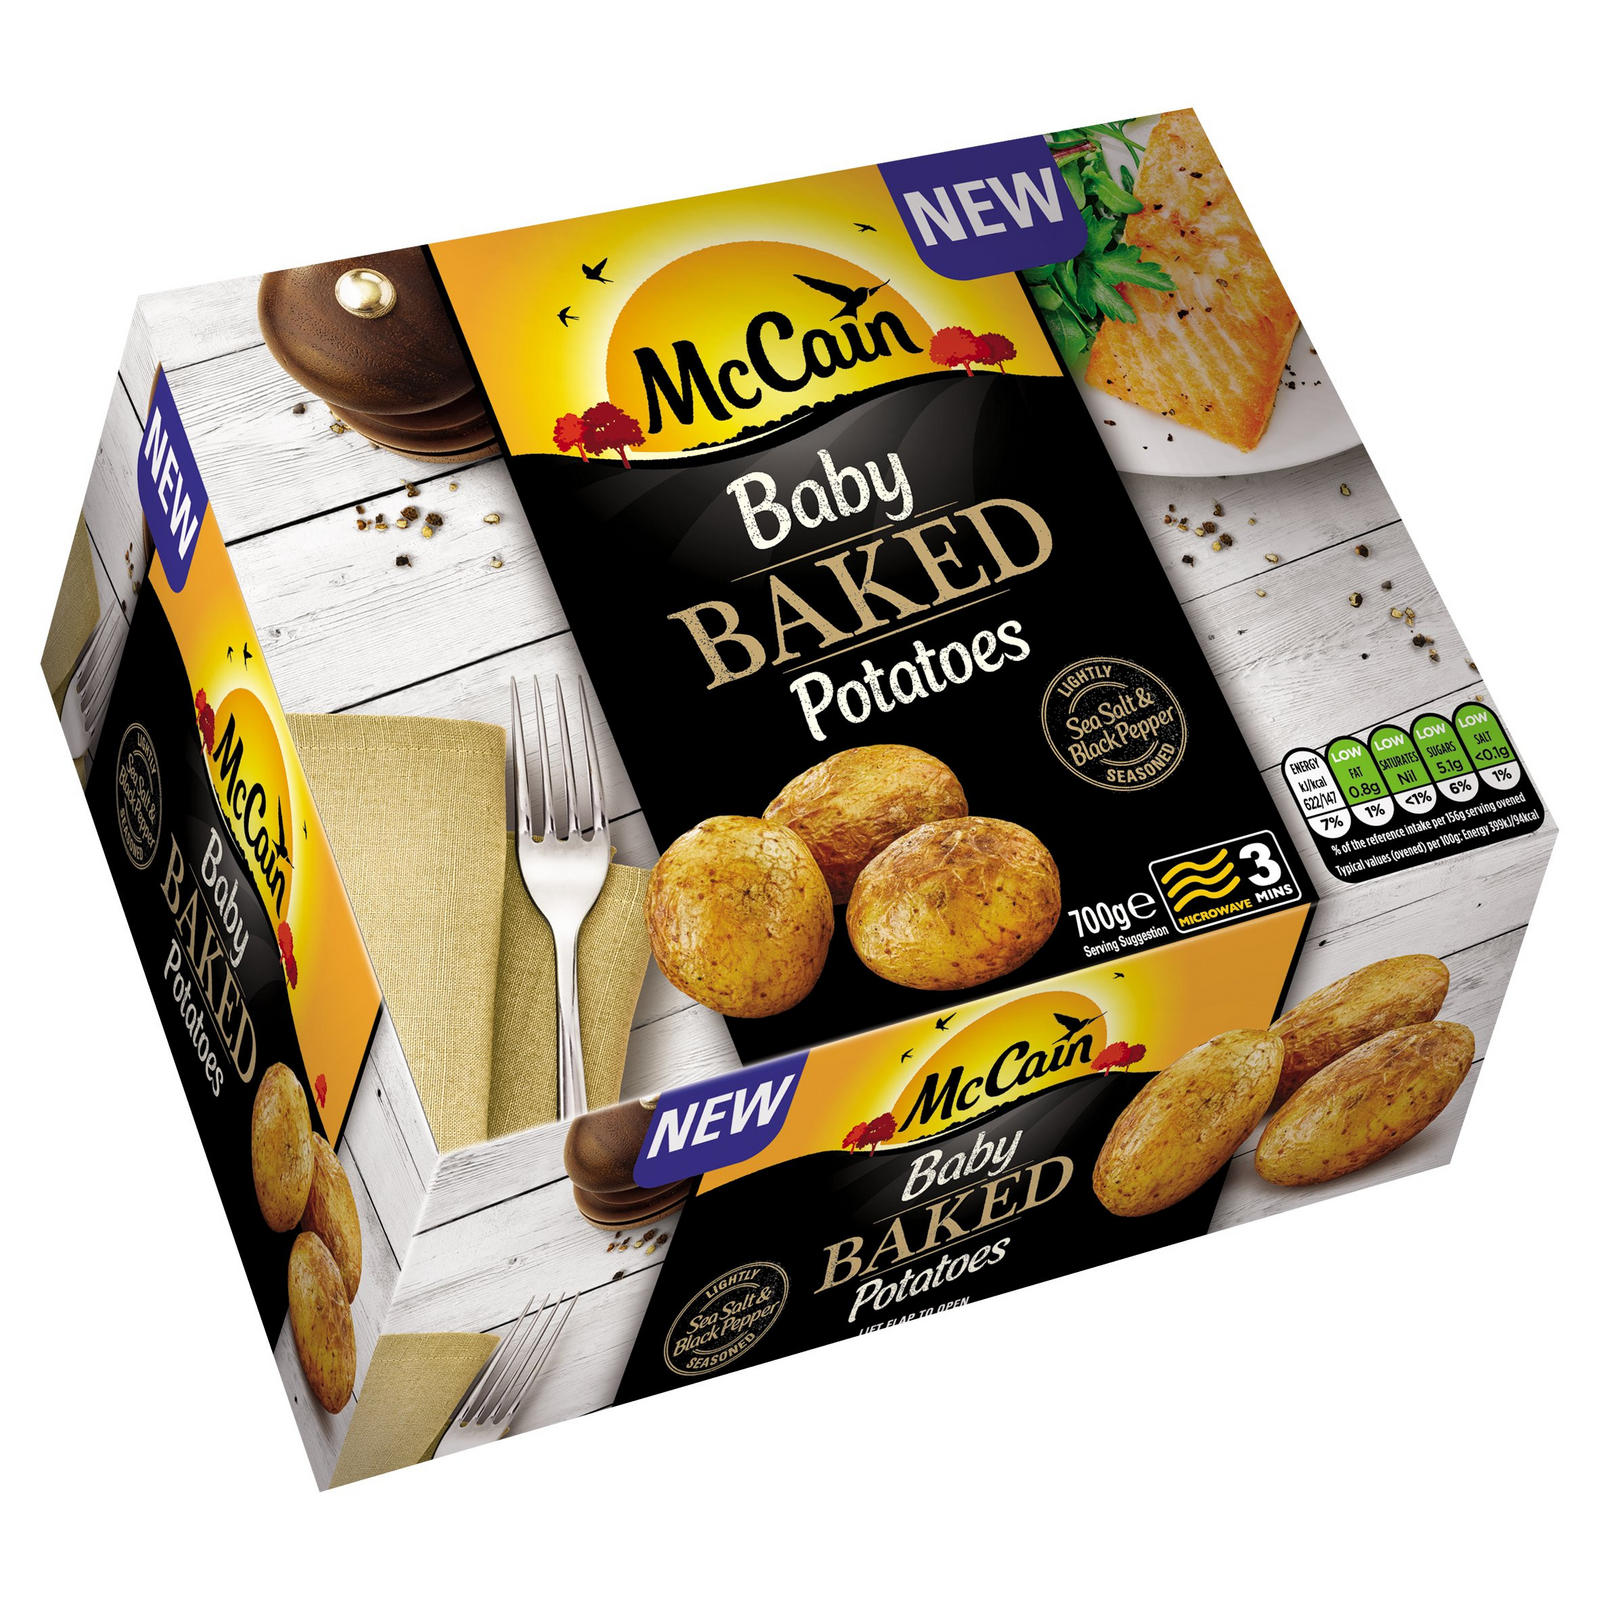 Mccain Baby Baked Potatoes 700g Potatoes Iceland Foods